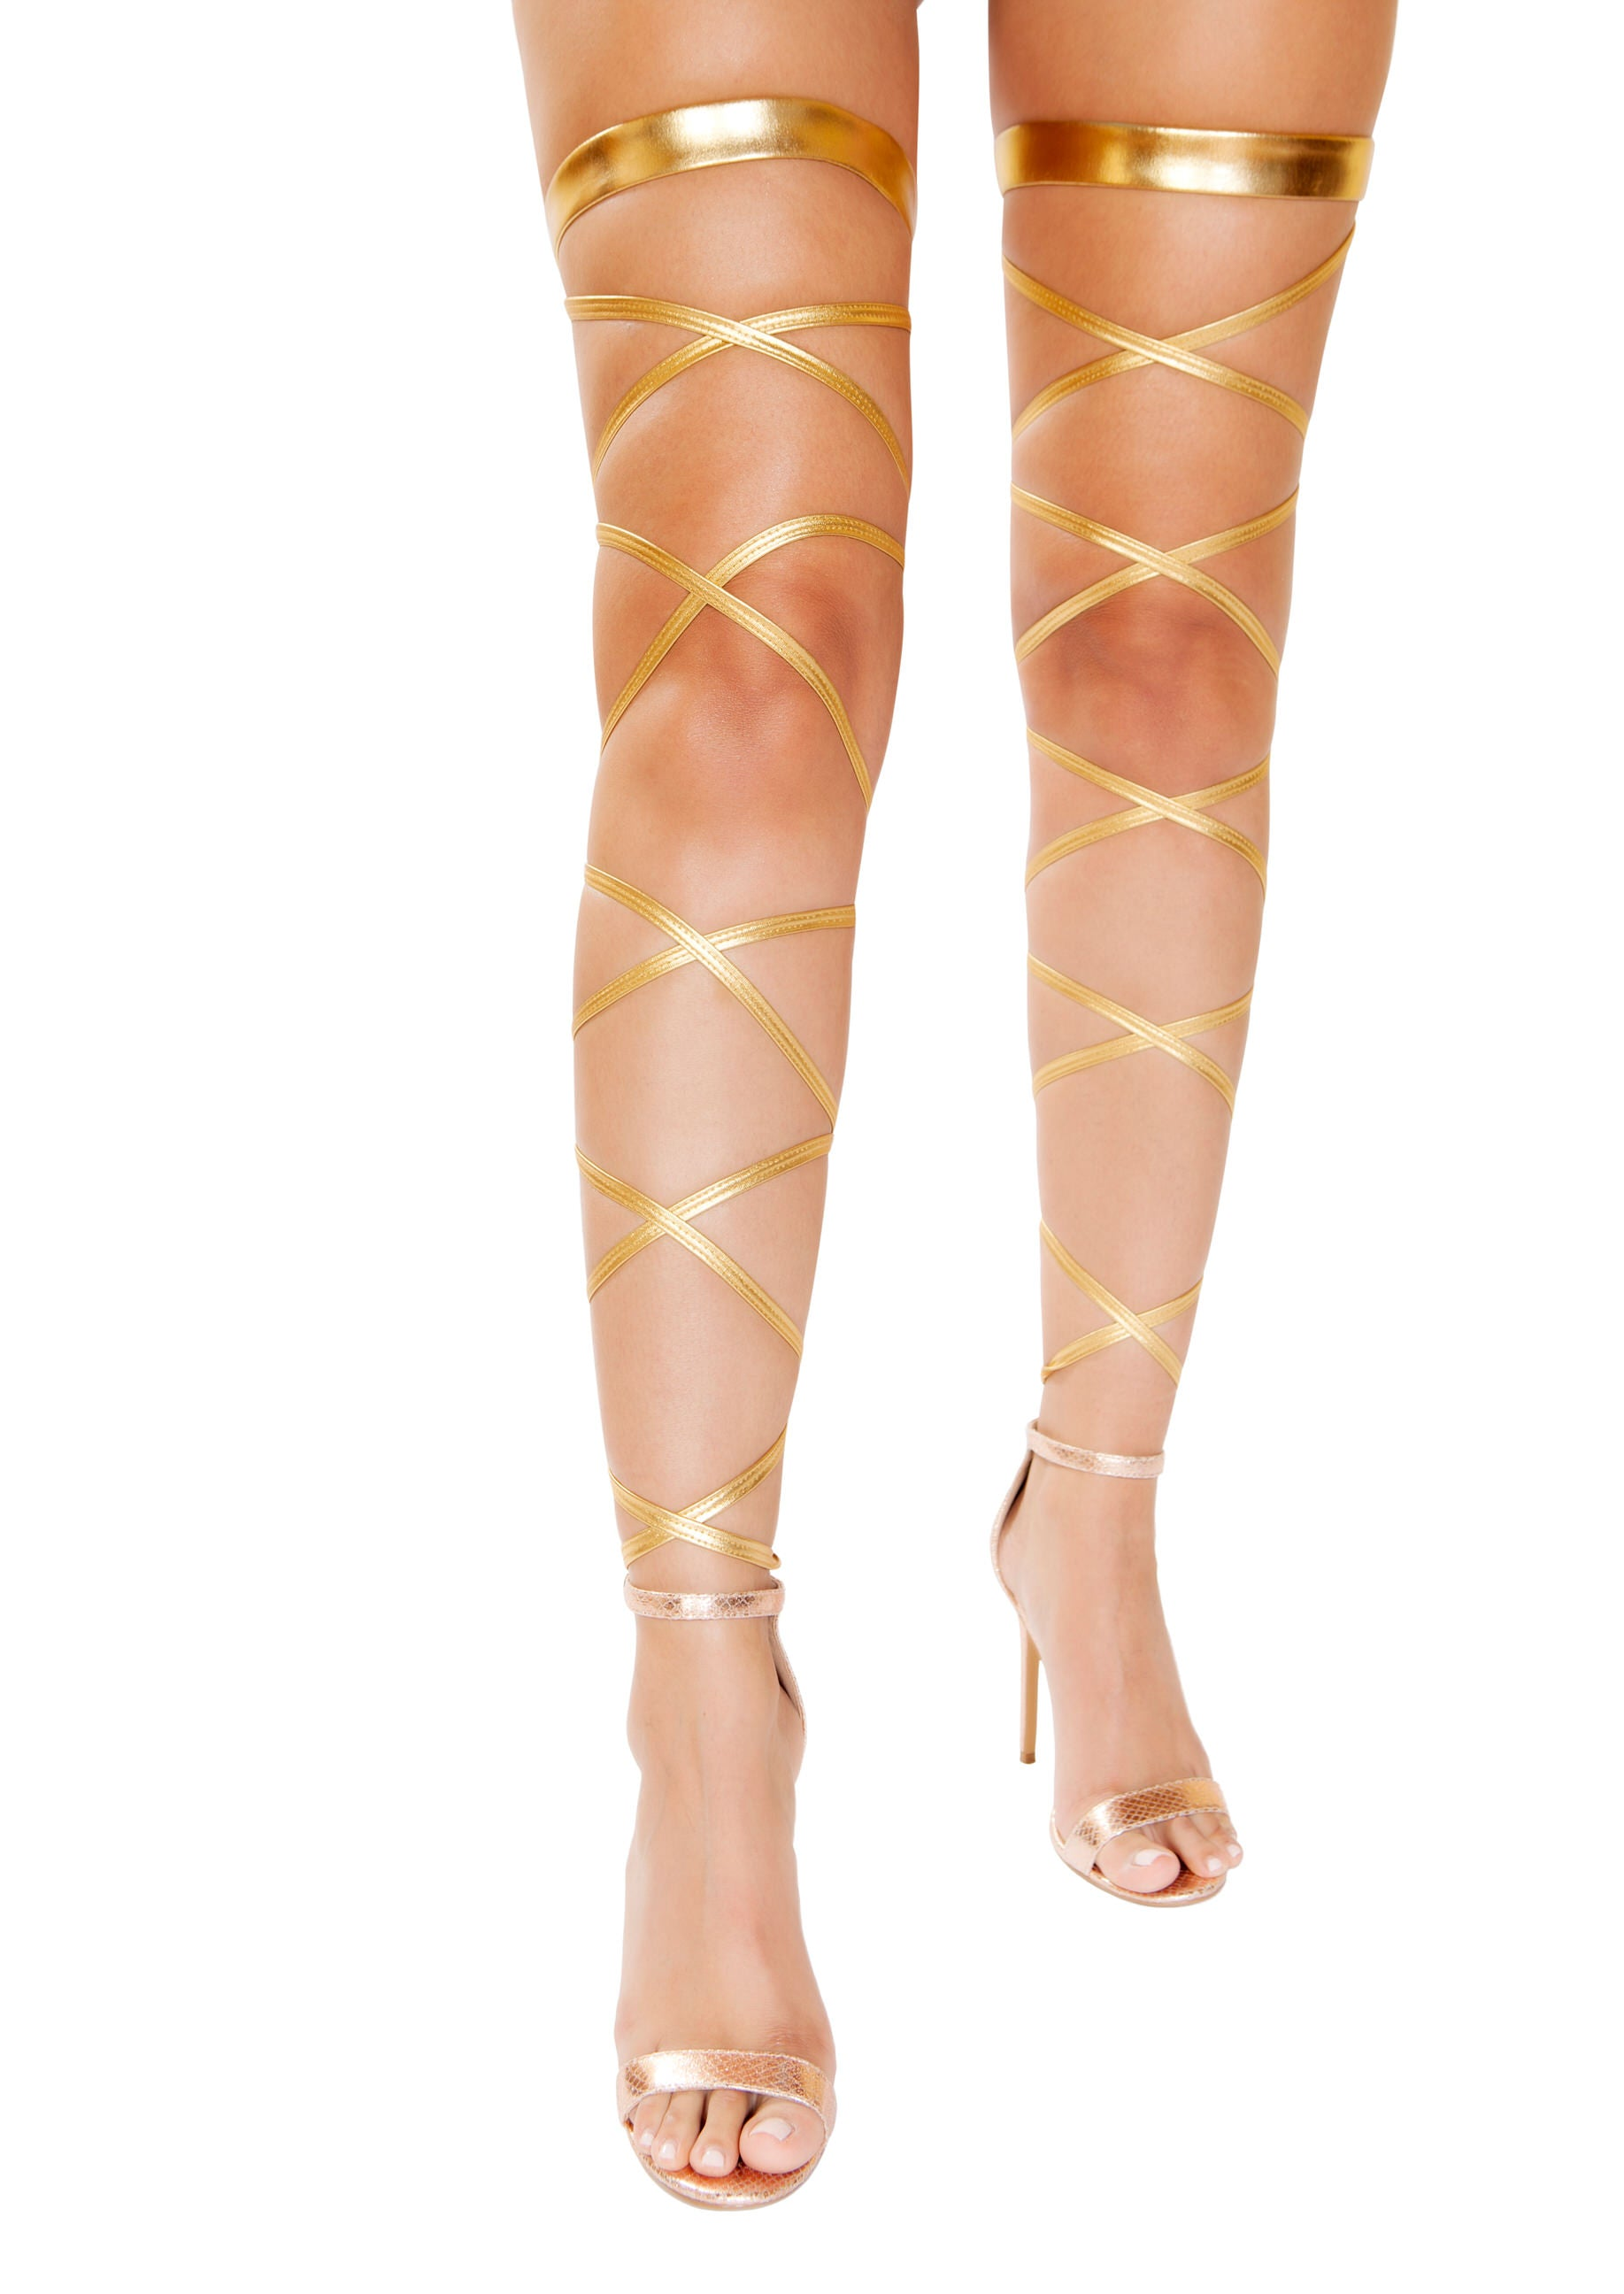 4929 - Pair of Metallic Leg Wraps ${description} | Roma Costume and Roma Confidential wholesale manufacturer of Women Apparel bulk world wide wholesale and world wide drop ship services for Adult Halloween Costumes, Sexy and Elegant Lingerie, Rave Clothing, Club wear, and Christmas Costumes. Costumes, accessories, Roma Costume, Inc., Roma Costume, Roma Confidential, Wholesale clothing, drop ship, drop ship service, Wholesale Lingerie, Wholesale Adult Halloween Costumes, Rave Clothing, EDM Clothing, Festival Wear, Christmas Costumes, Clubwear, Club wear.